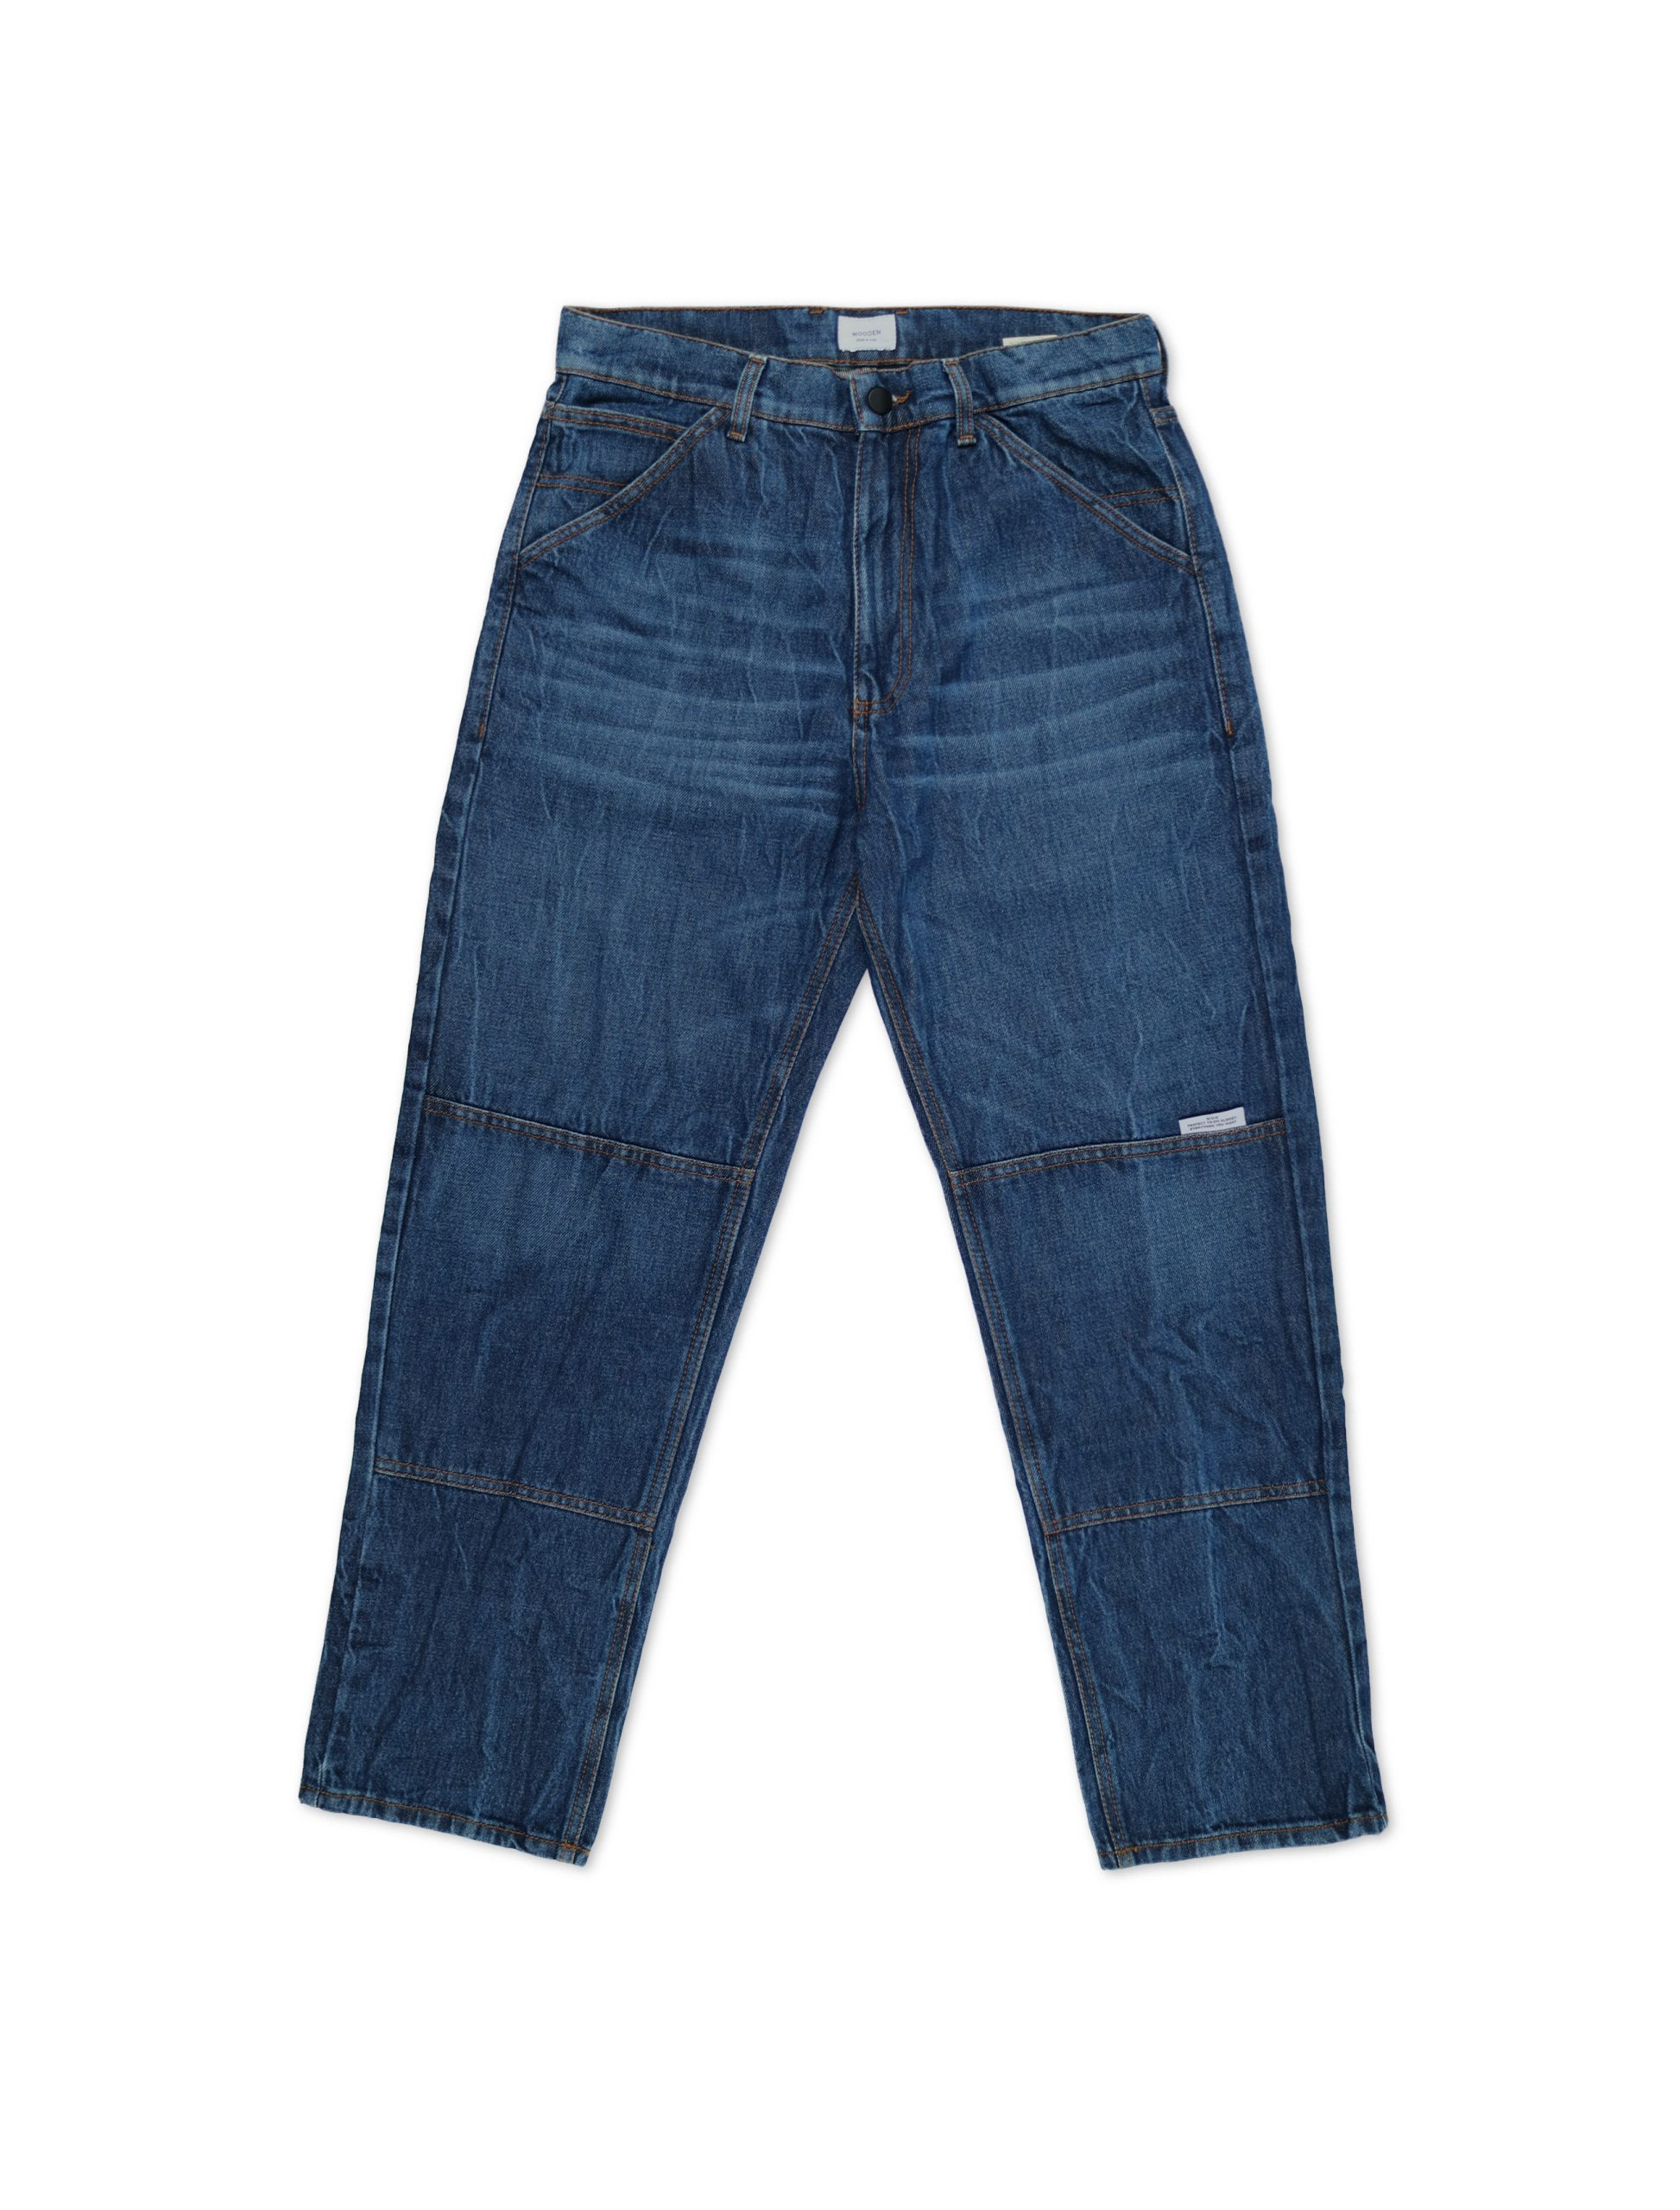 Jeans 1990 Blue Wrinkle | Wooden Store